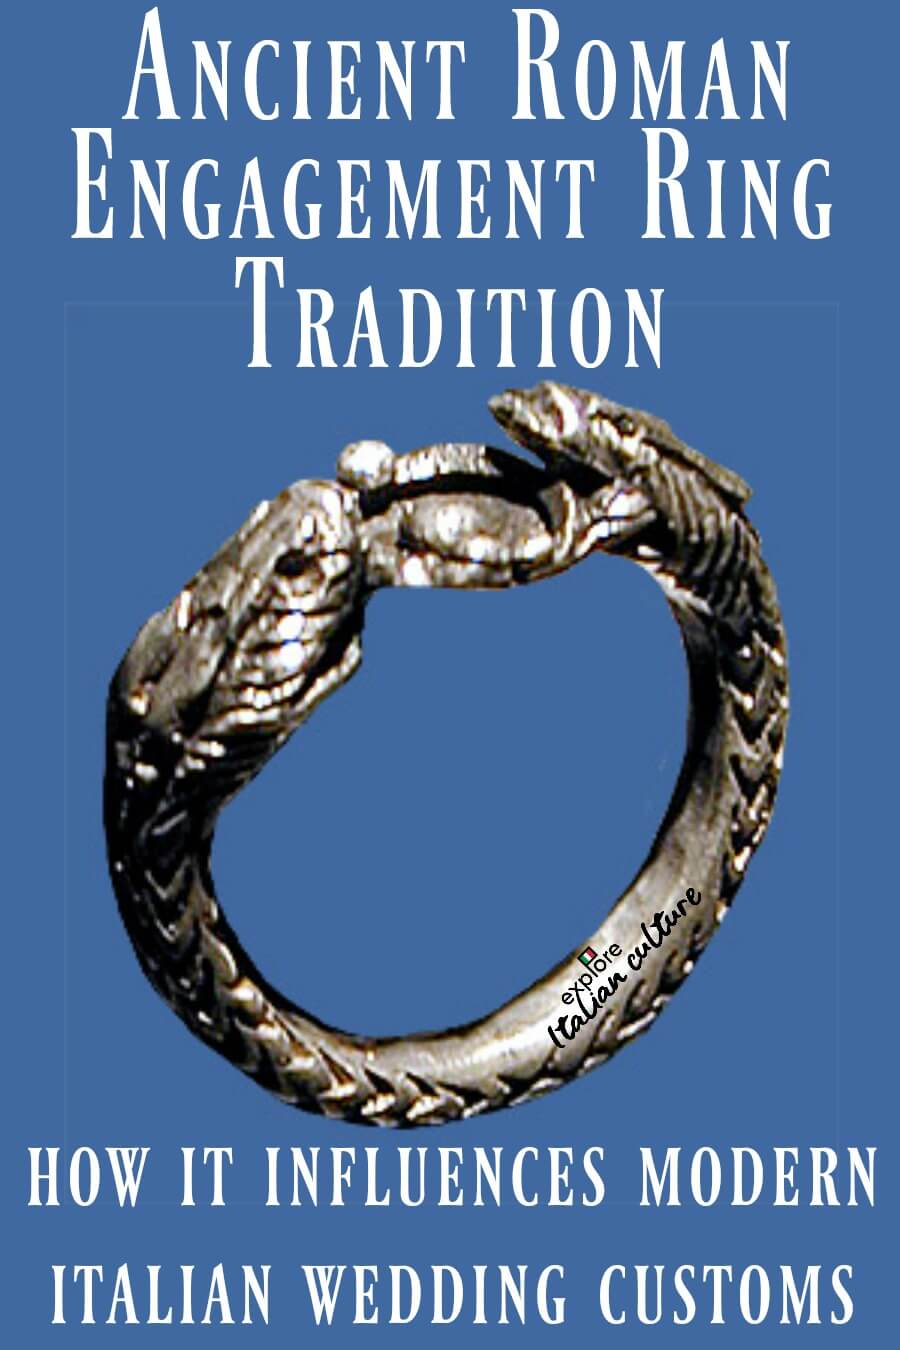 Ancient Roman engagement ring traditions - pin for later.